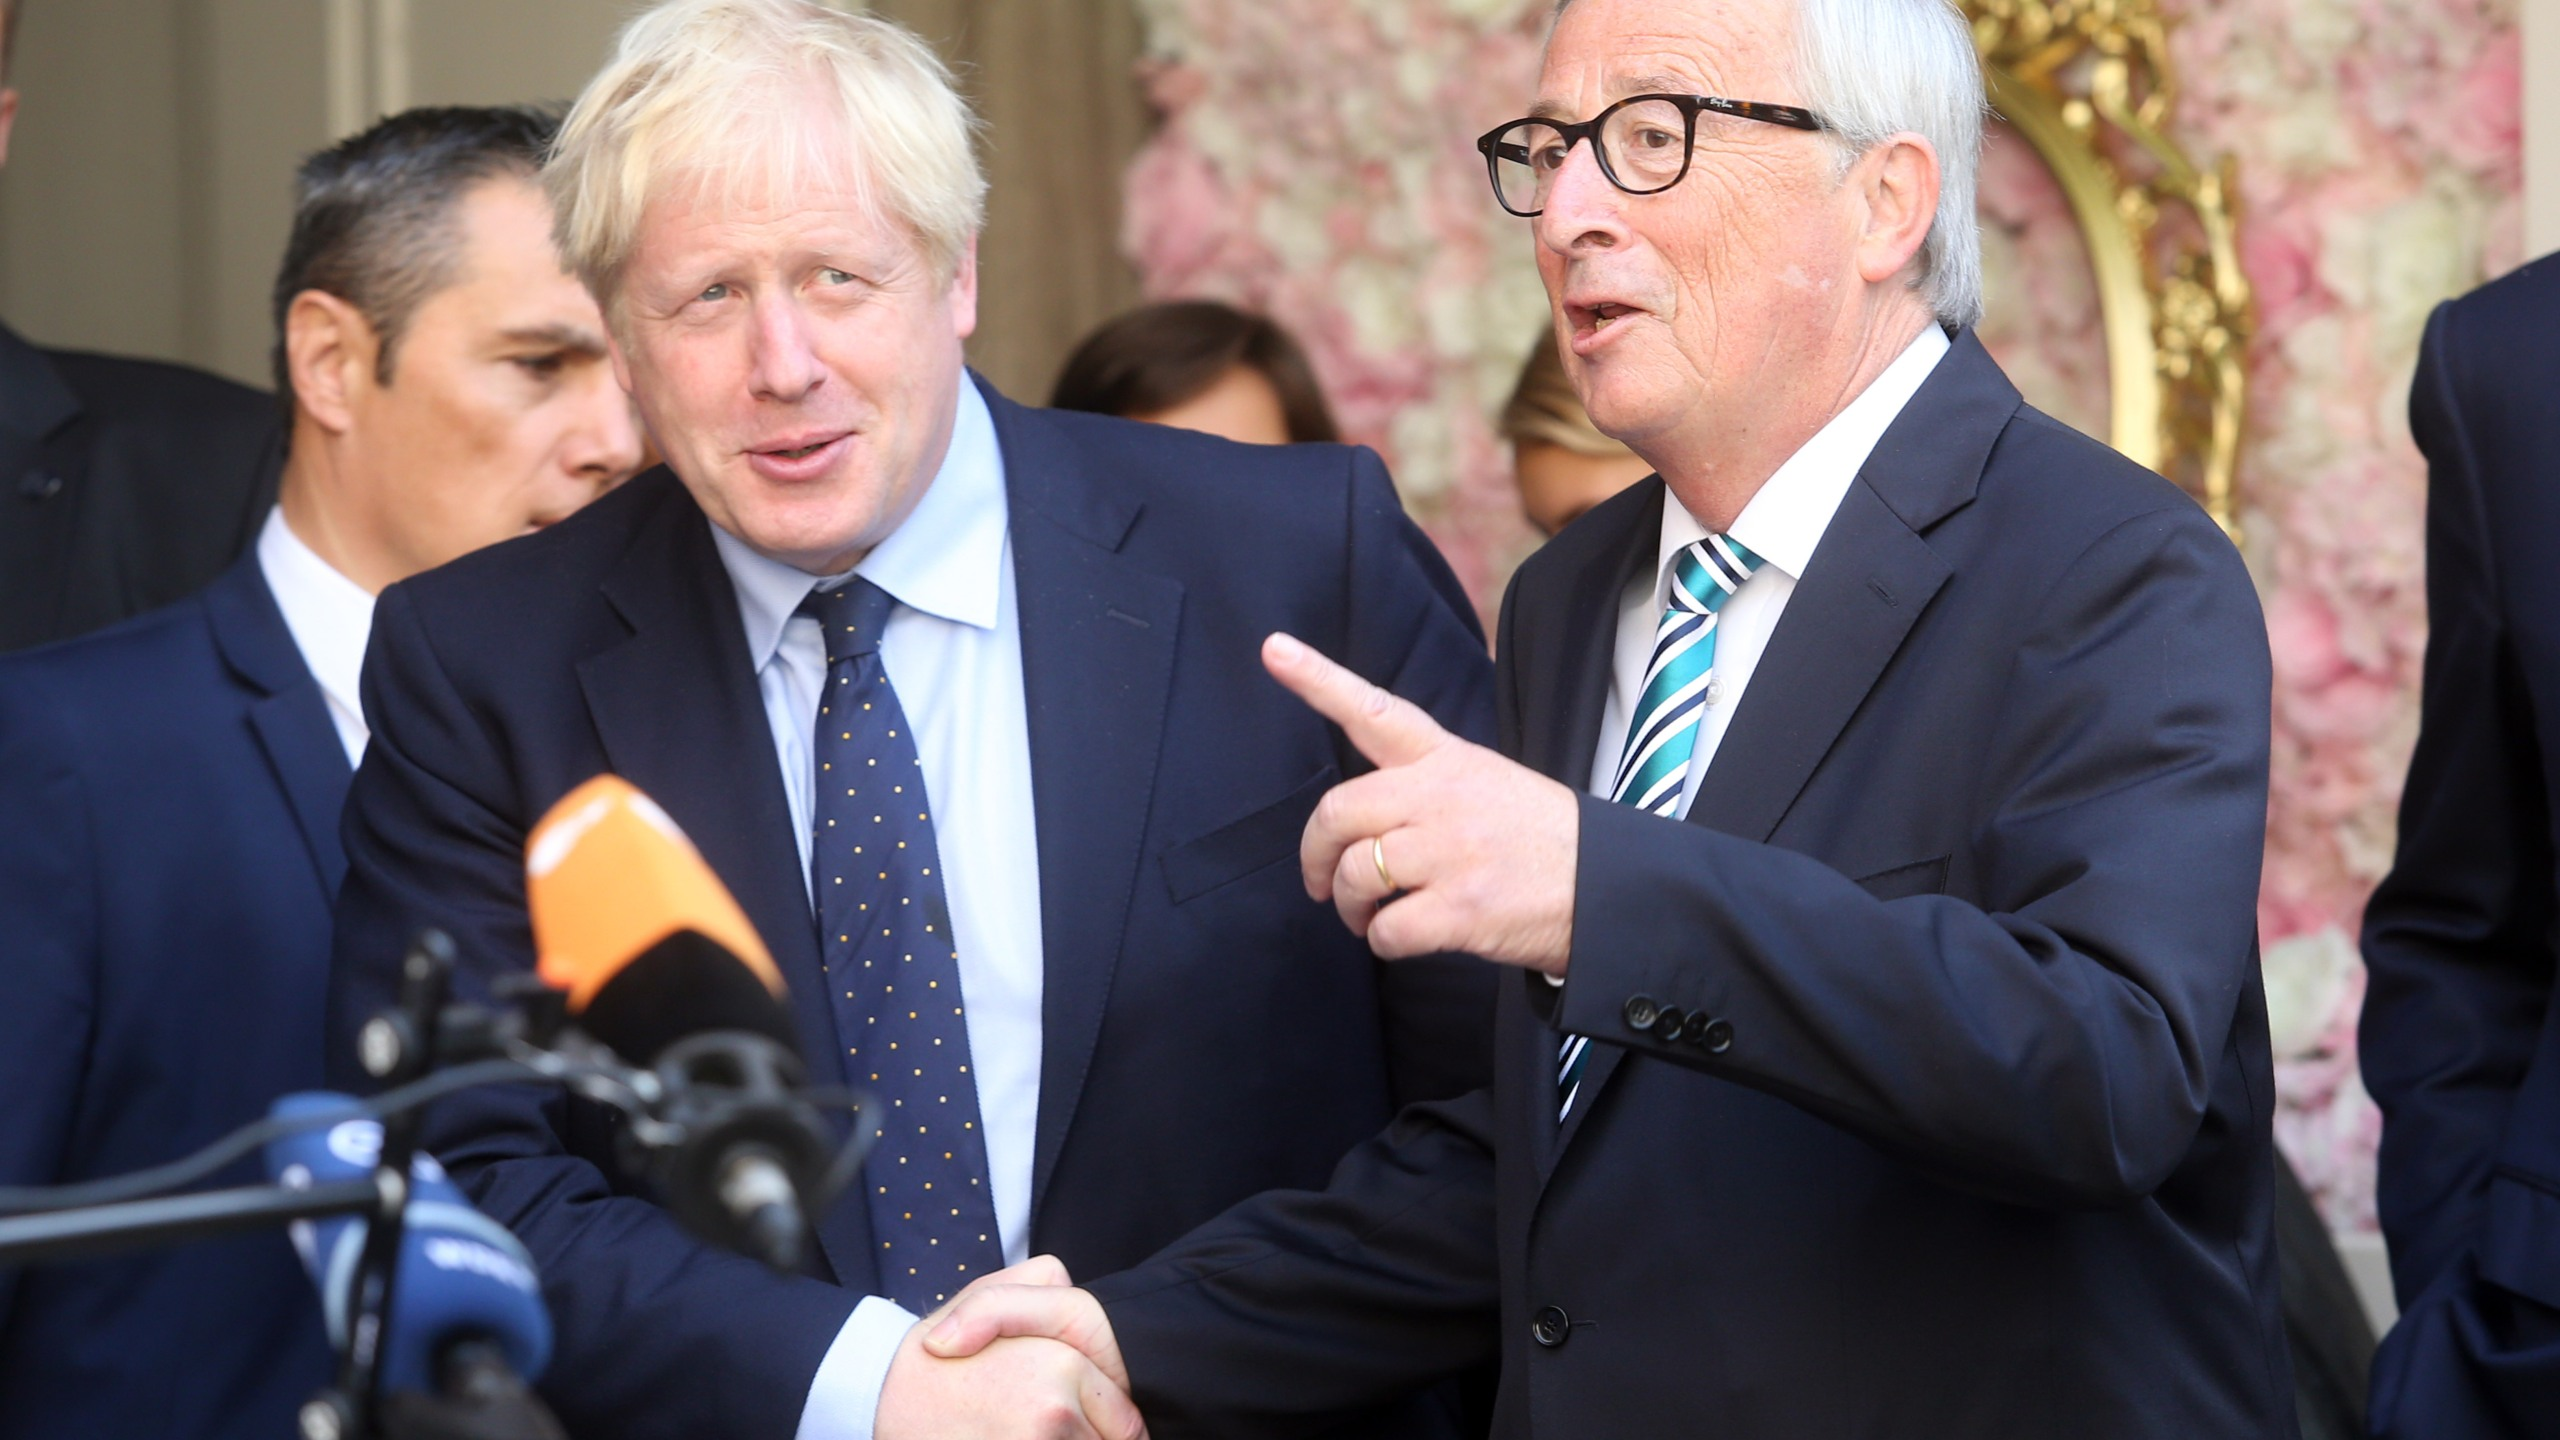 European Union Commission president Jean-Claude Juncker (R) welcomes British Prime Minister Boris Johnson (L) prior to their meeting, on Sept. 16, 2019, in Luxembourg. (Credit: FRANCOIS WALSCHAERTS/AFP/Getty Images)